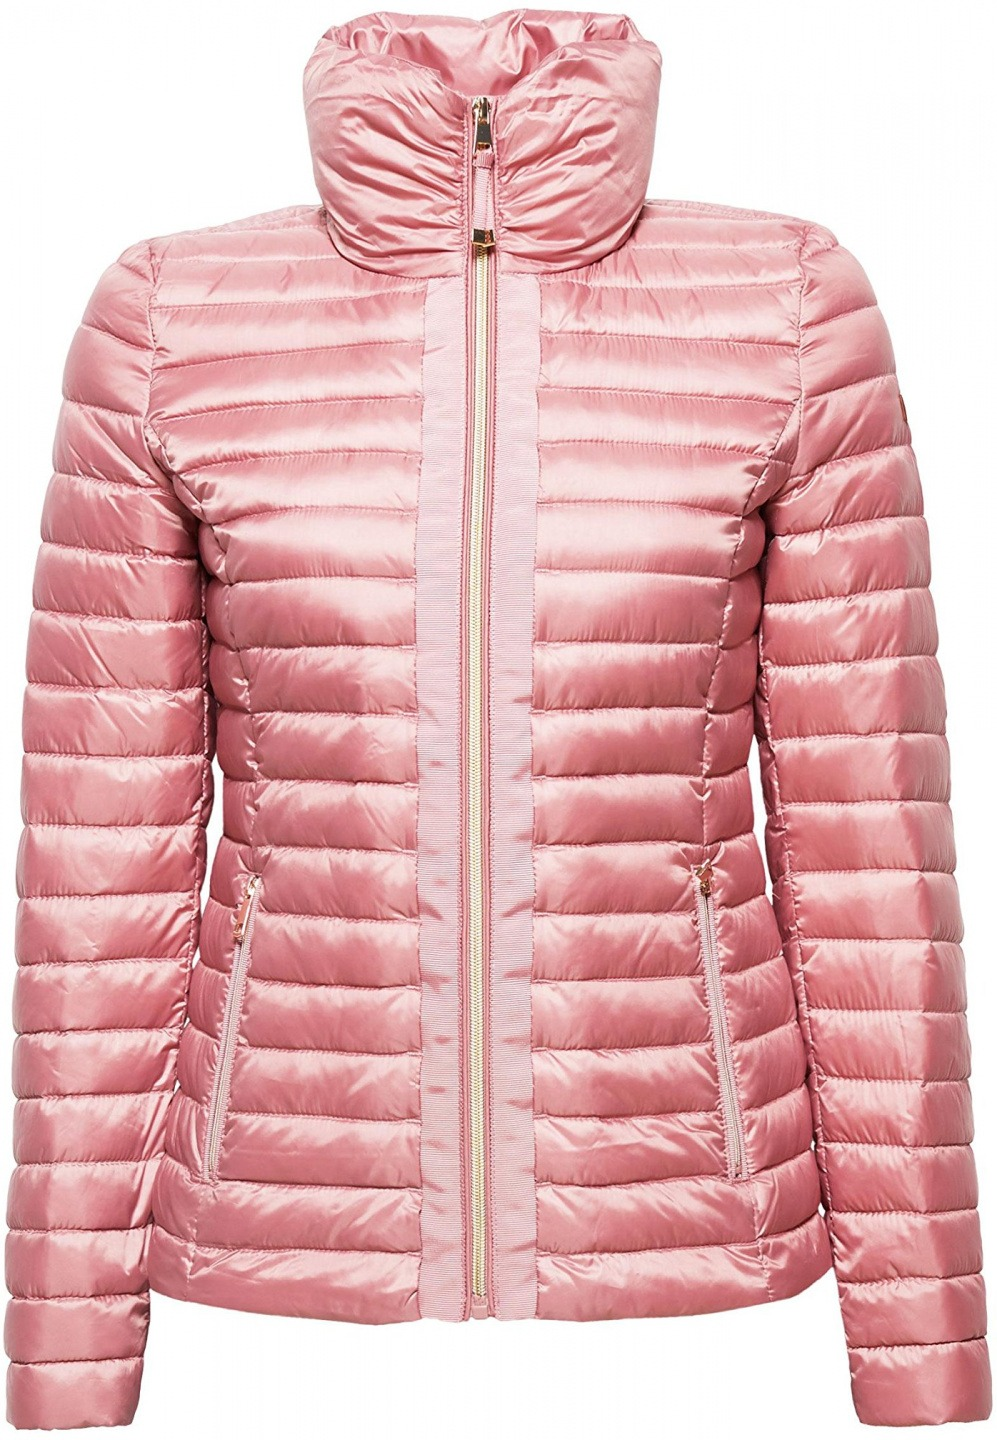 078eo1g012 Donna Collection 680 Old Pink Giacca Rosa ESPRIT Rq6Bx1